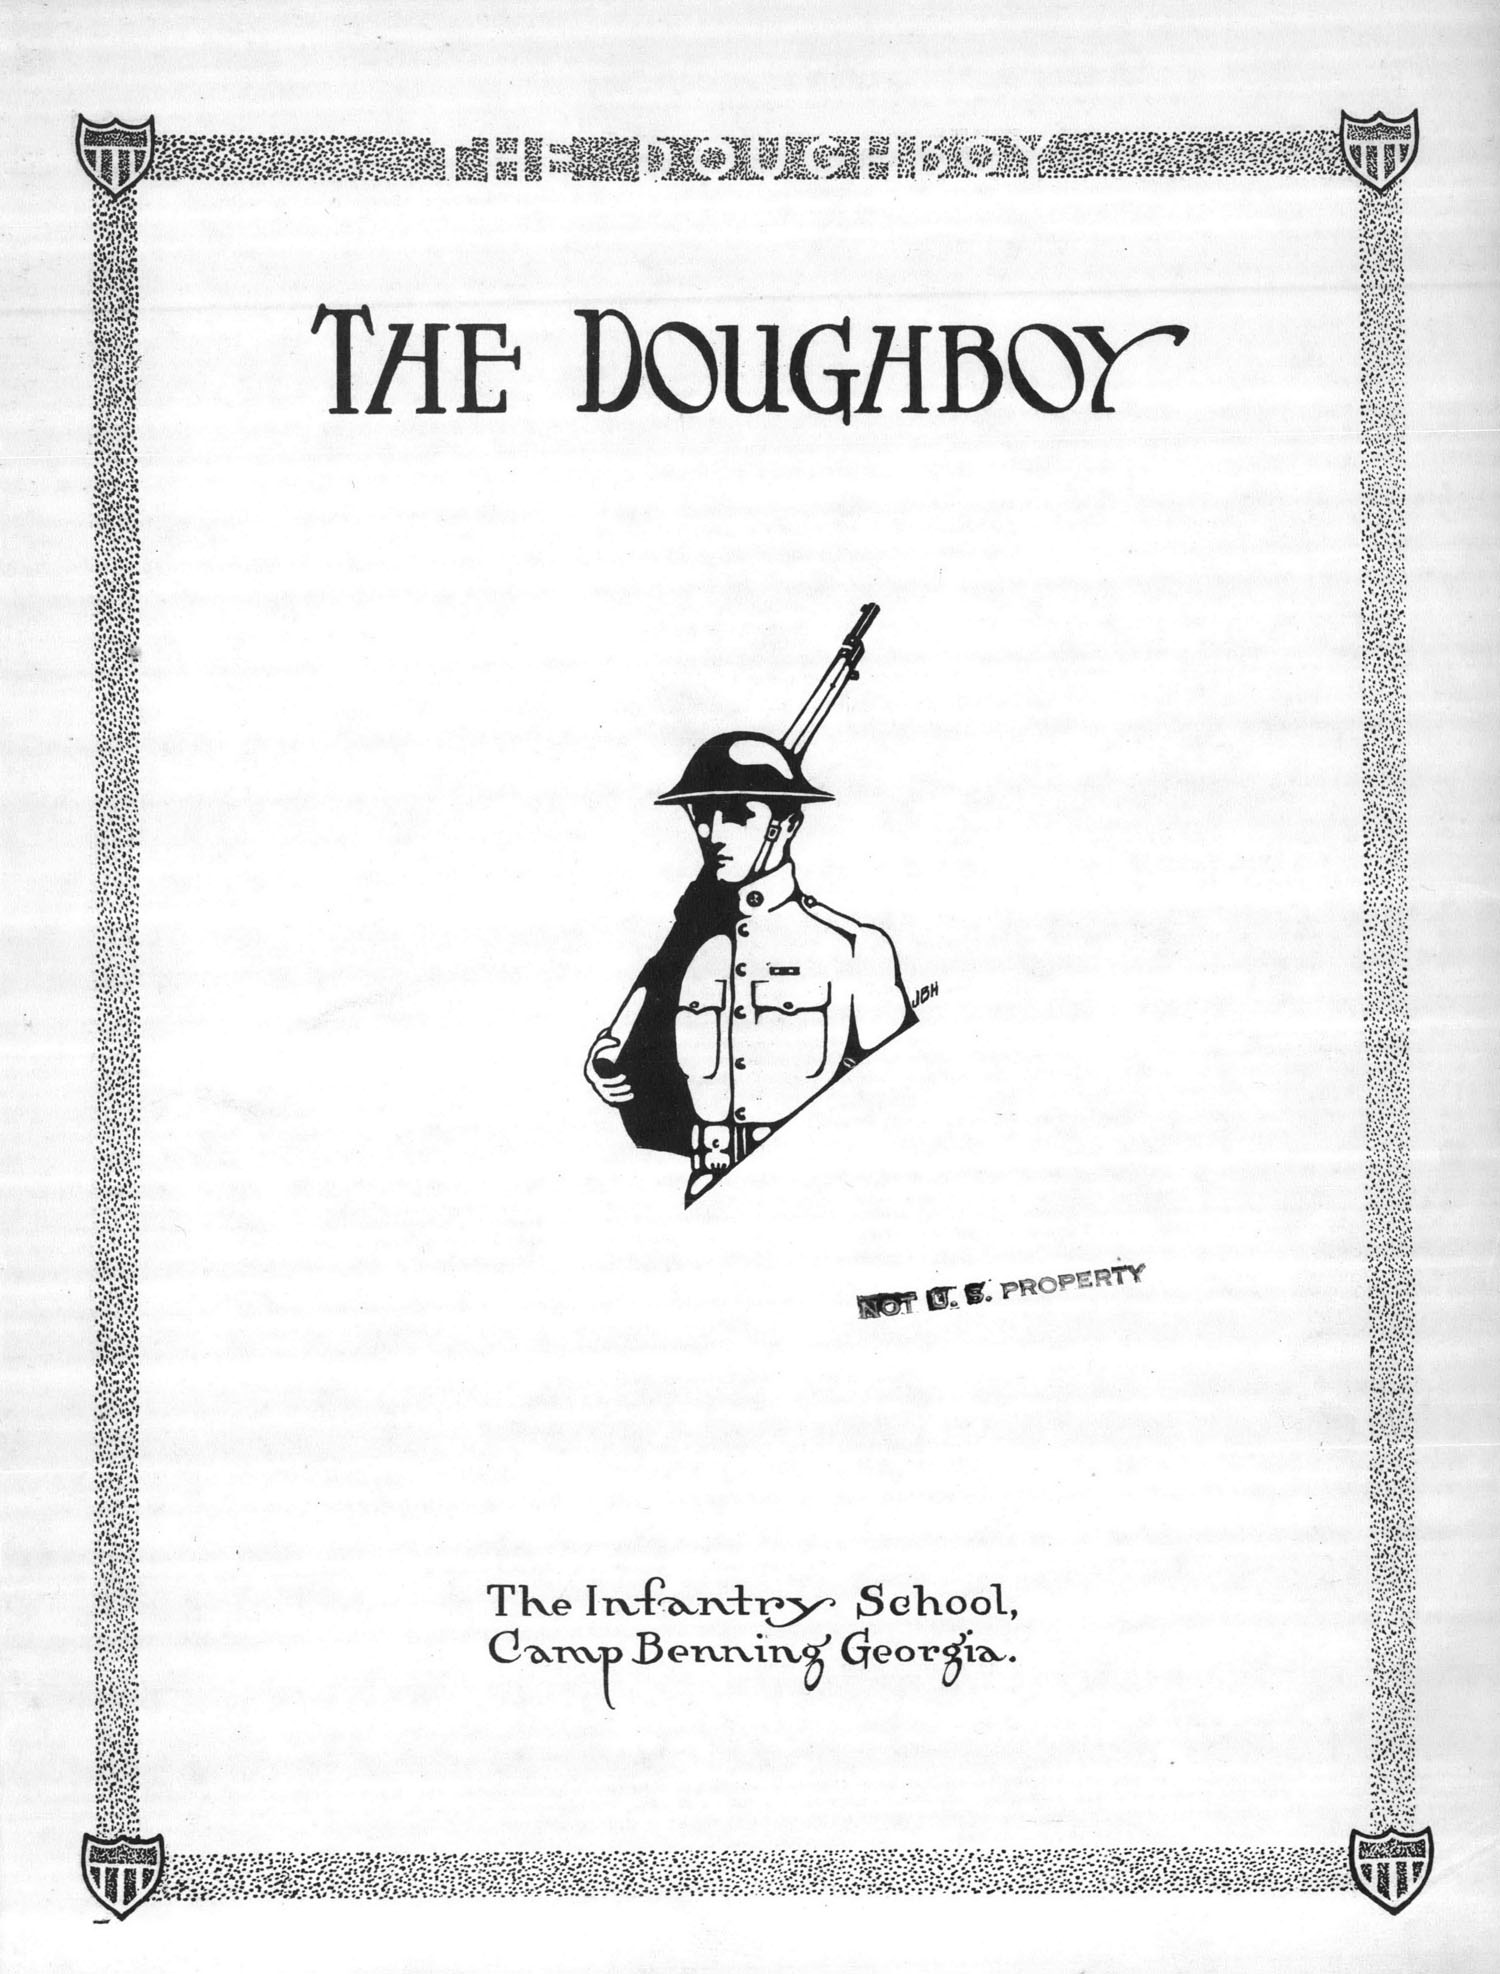 Doughboy photo